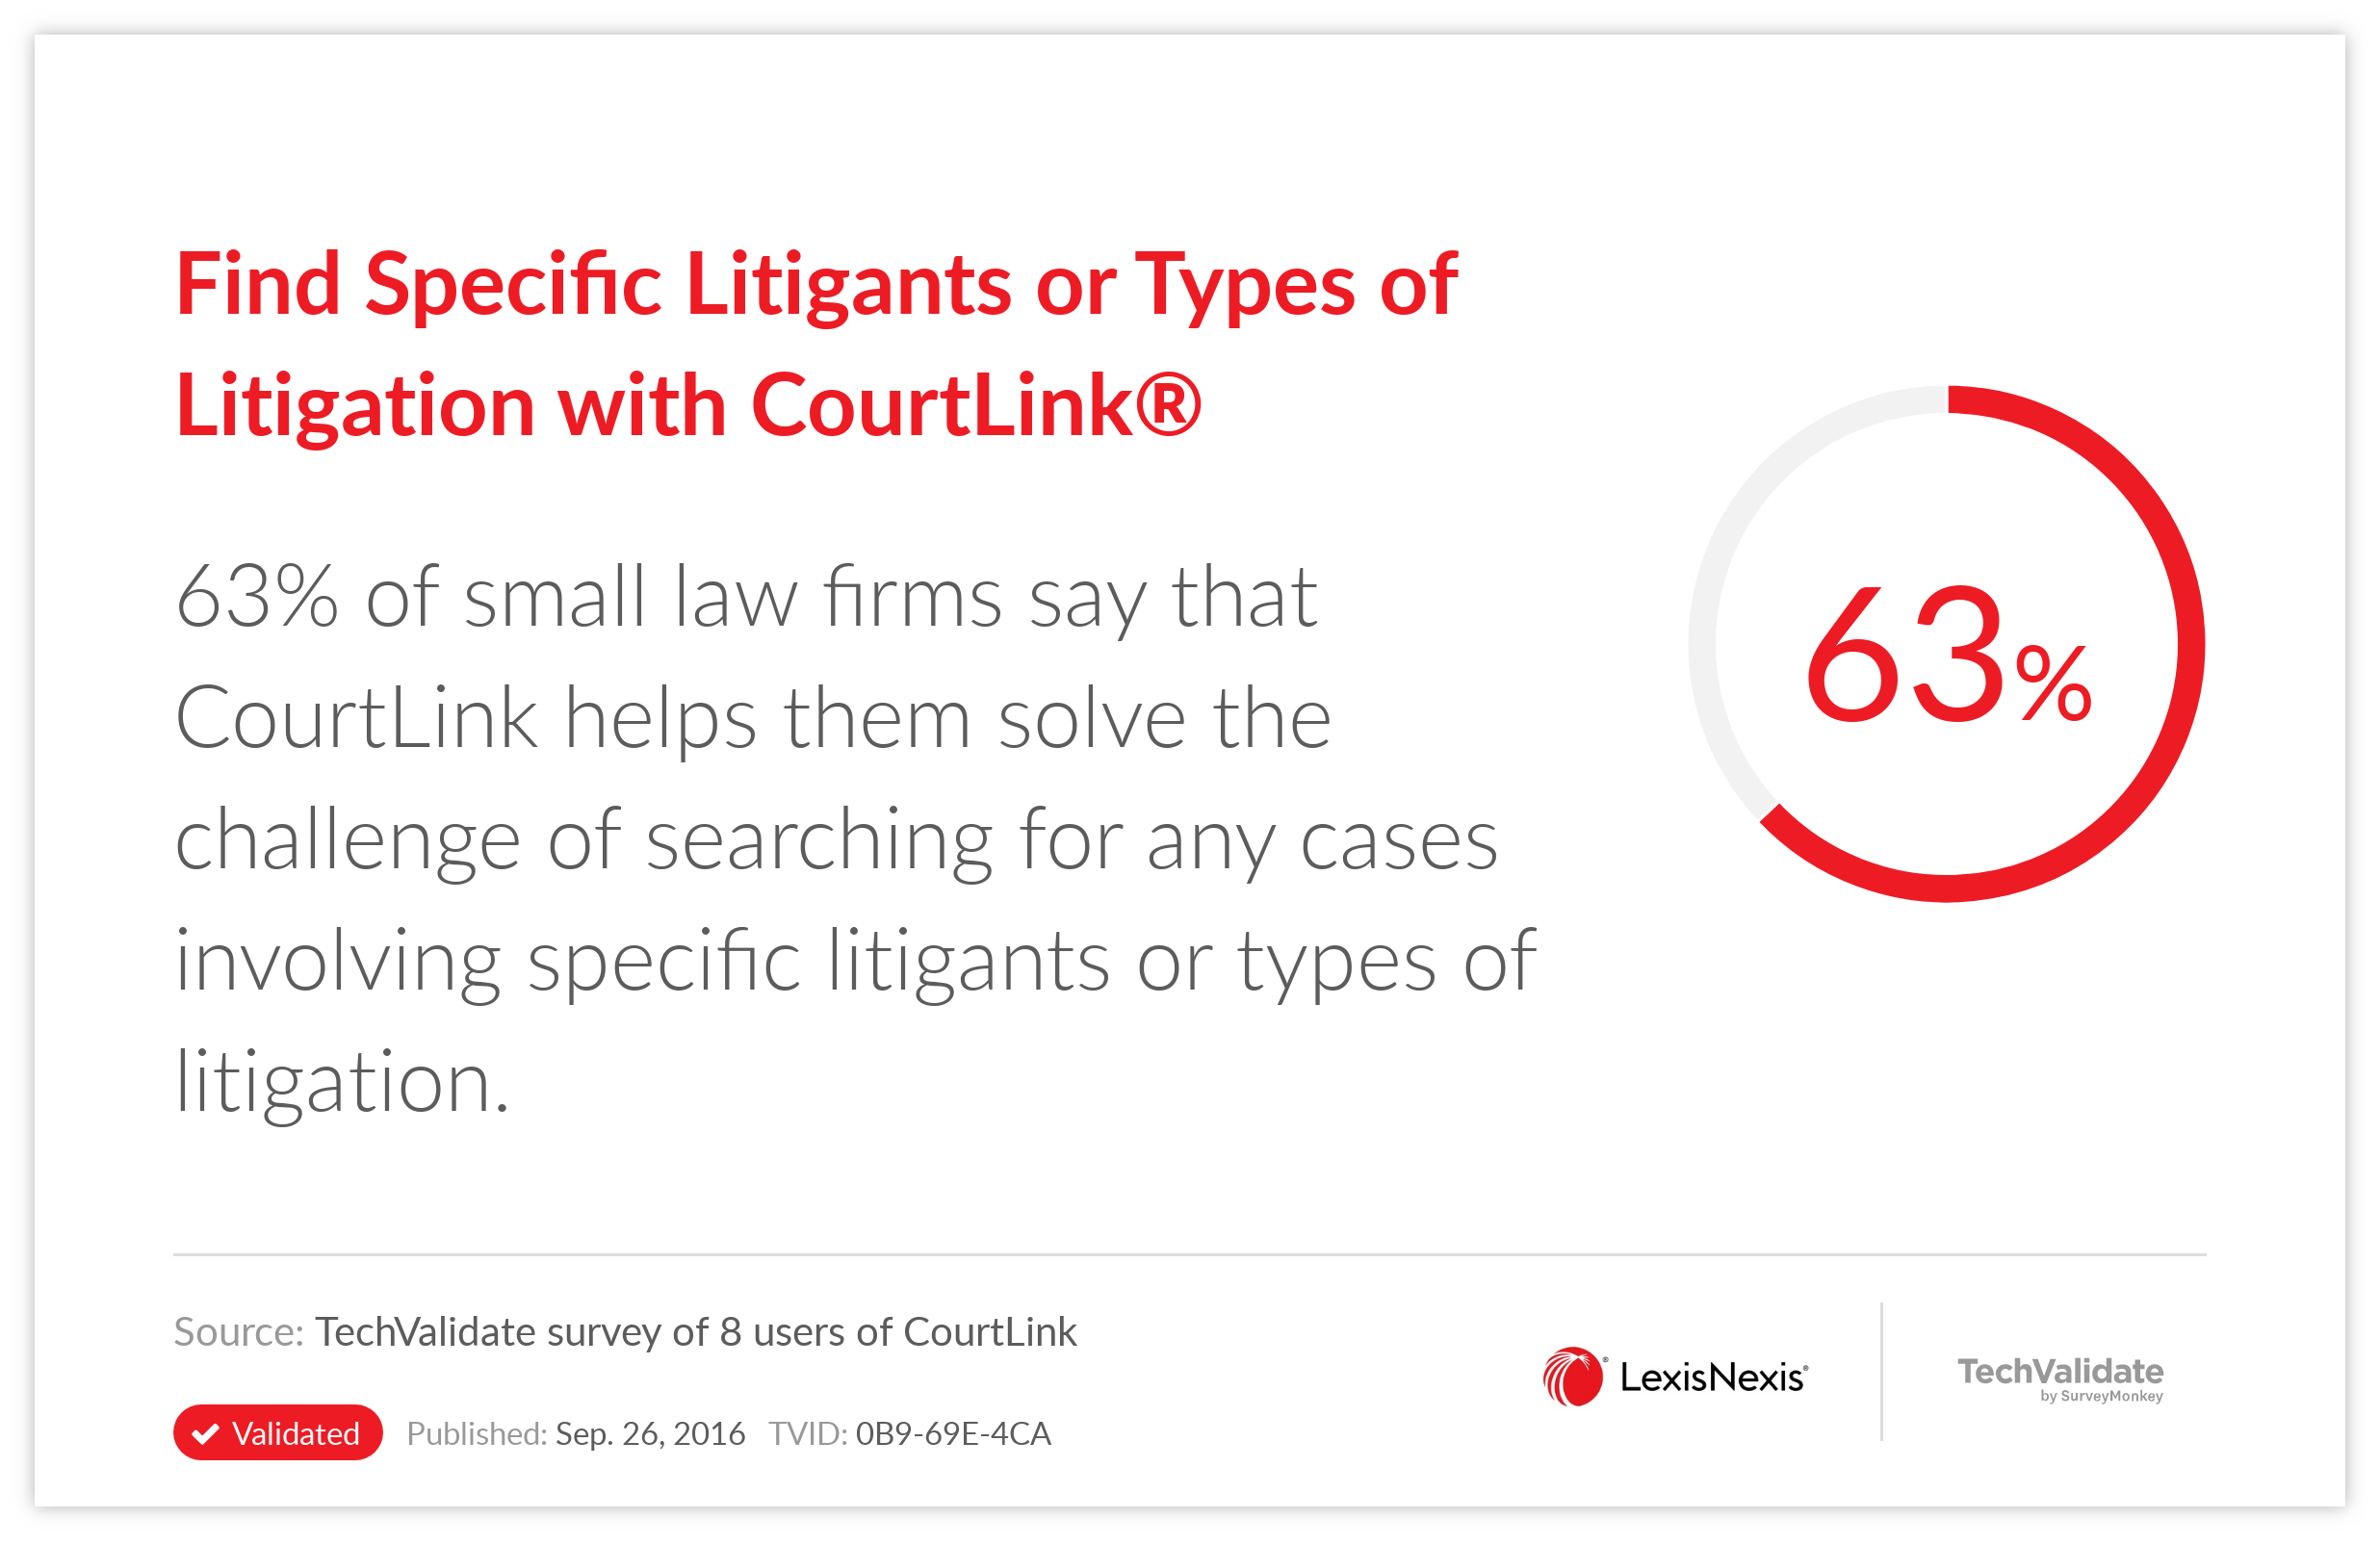 Find Specific Litigants or Types of Litigation with CourtLink(R)